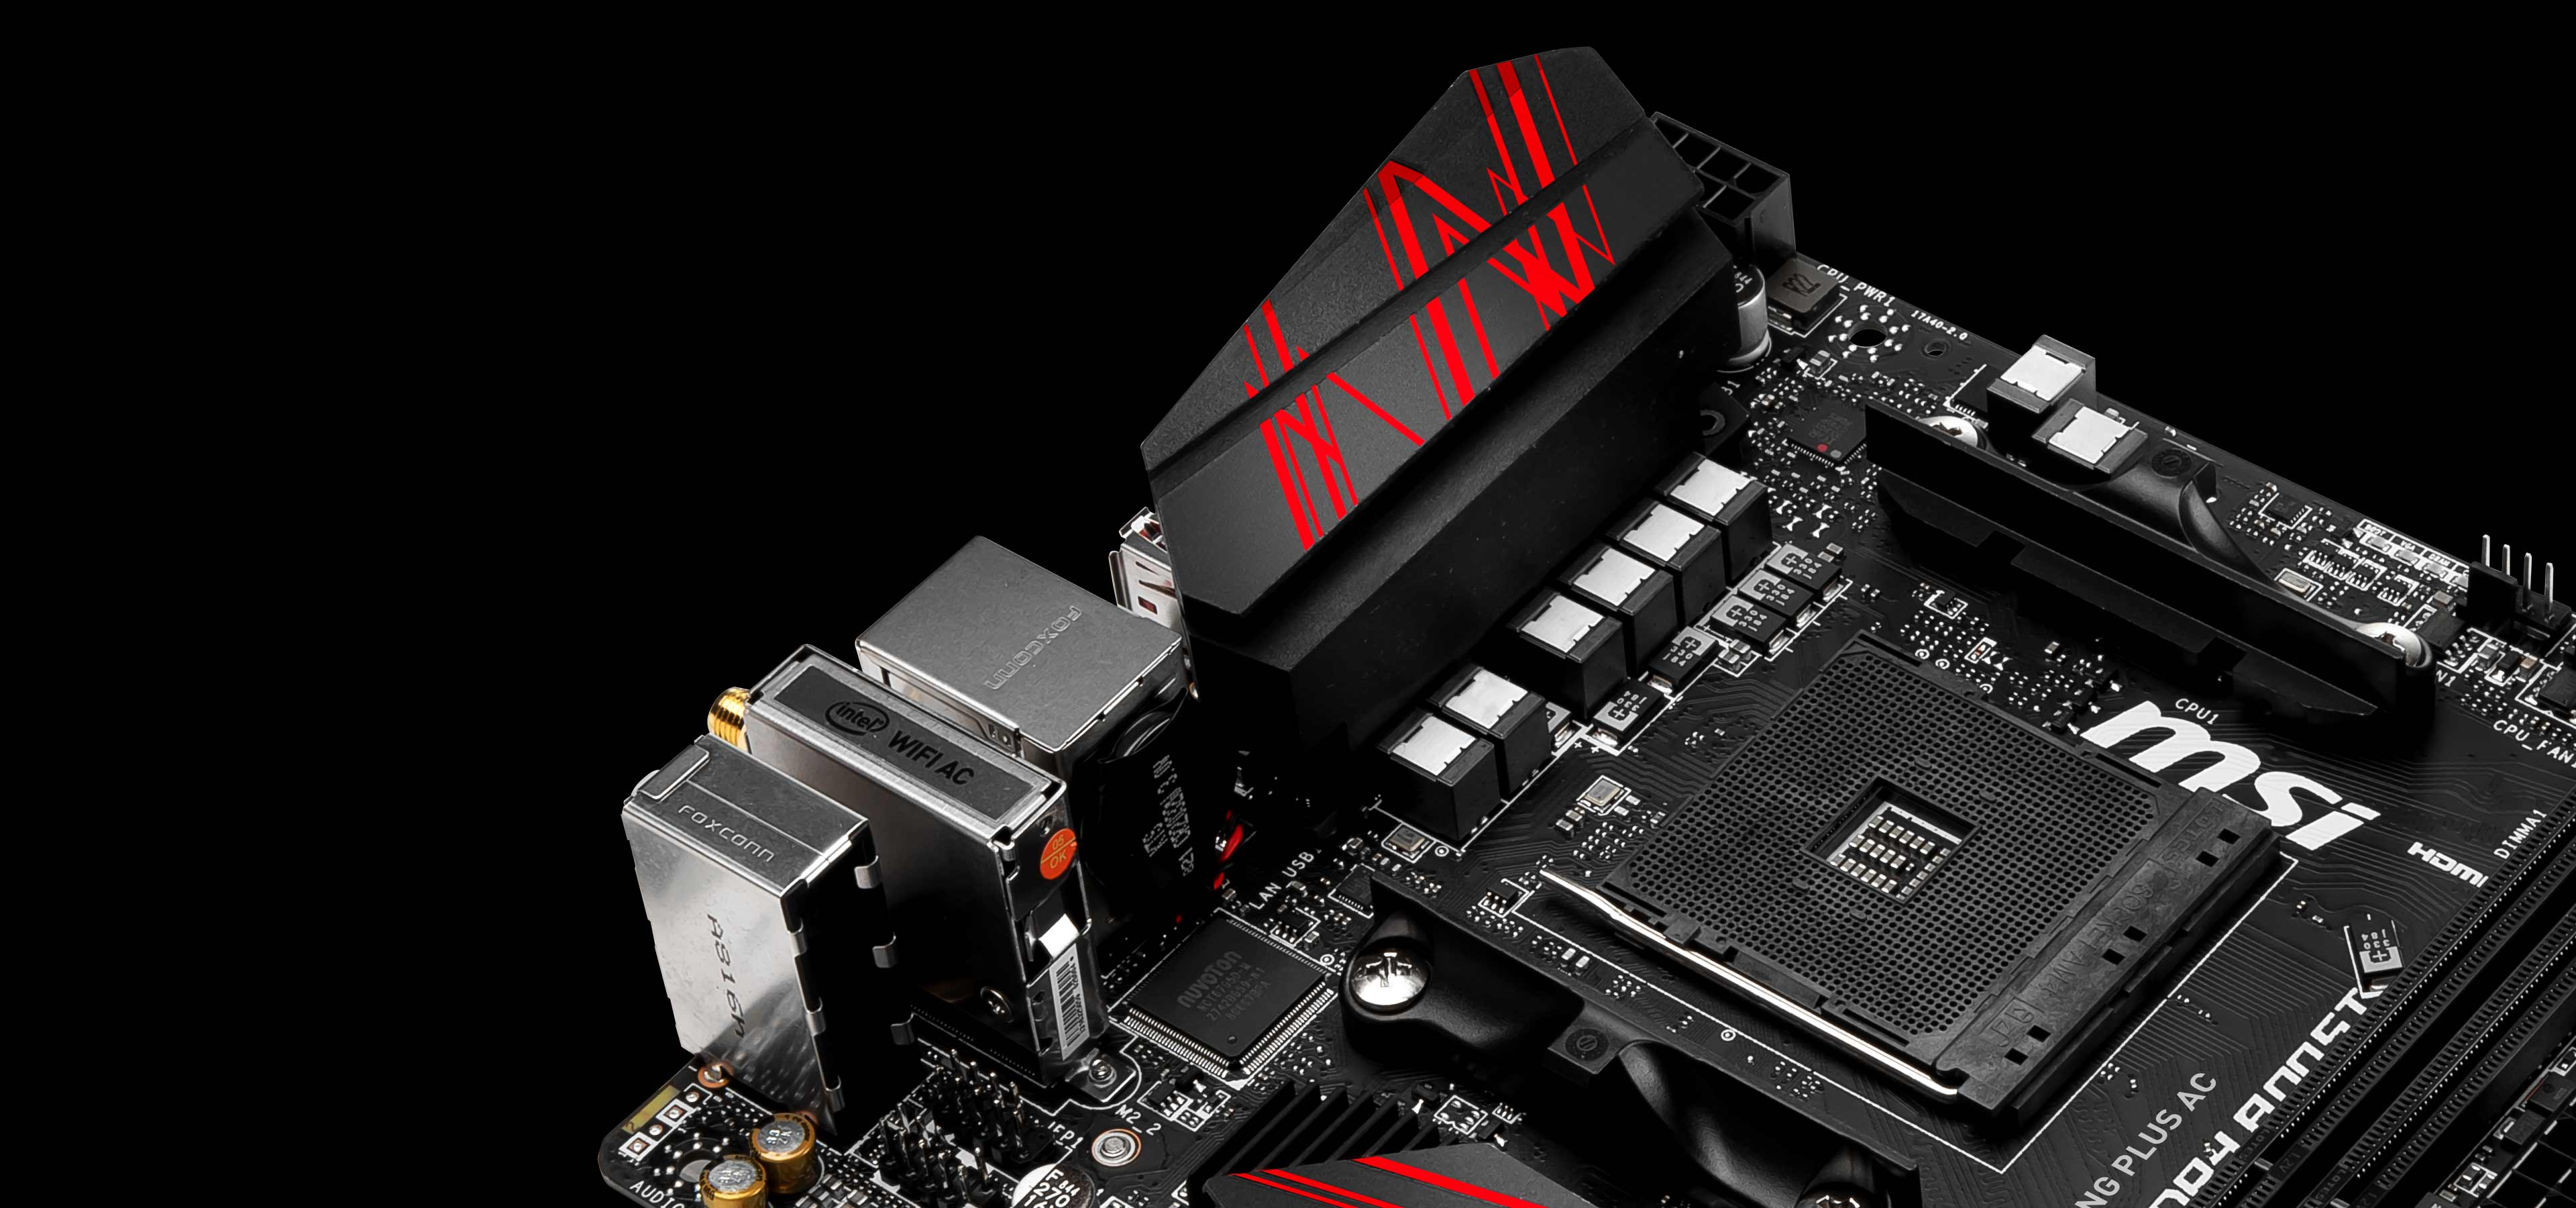 f55c51f2b4e B450I GAMING PLUS AC | Motherboard - The world leader in motherboard ...